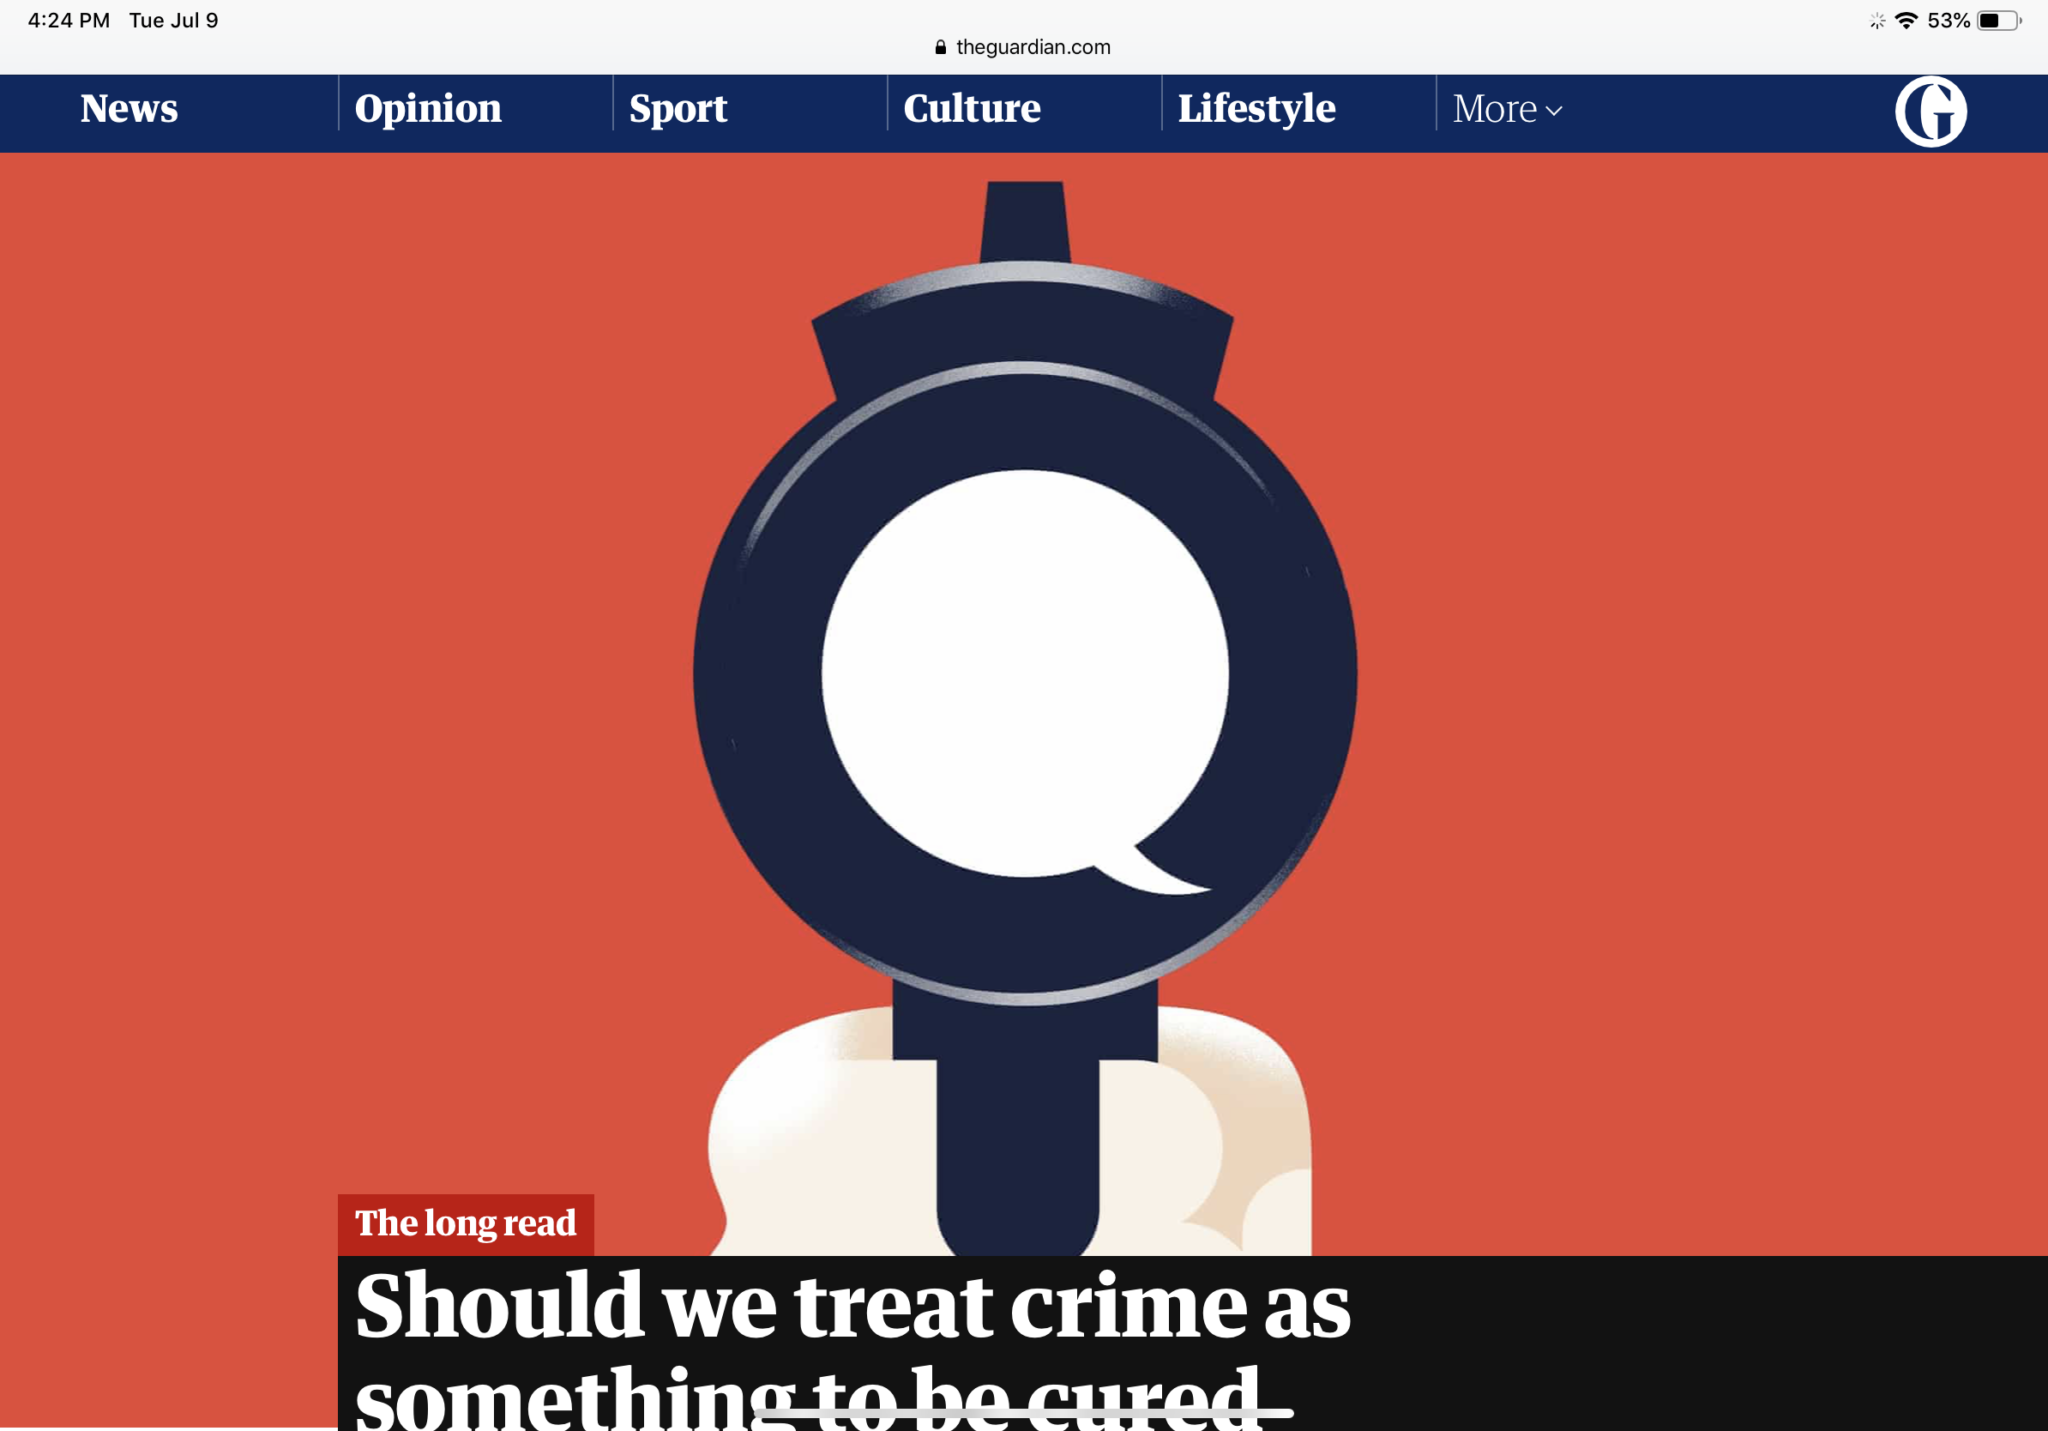 Guardian: Should We Treat Crime As Something To Be Cured